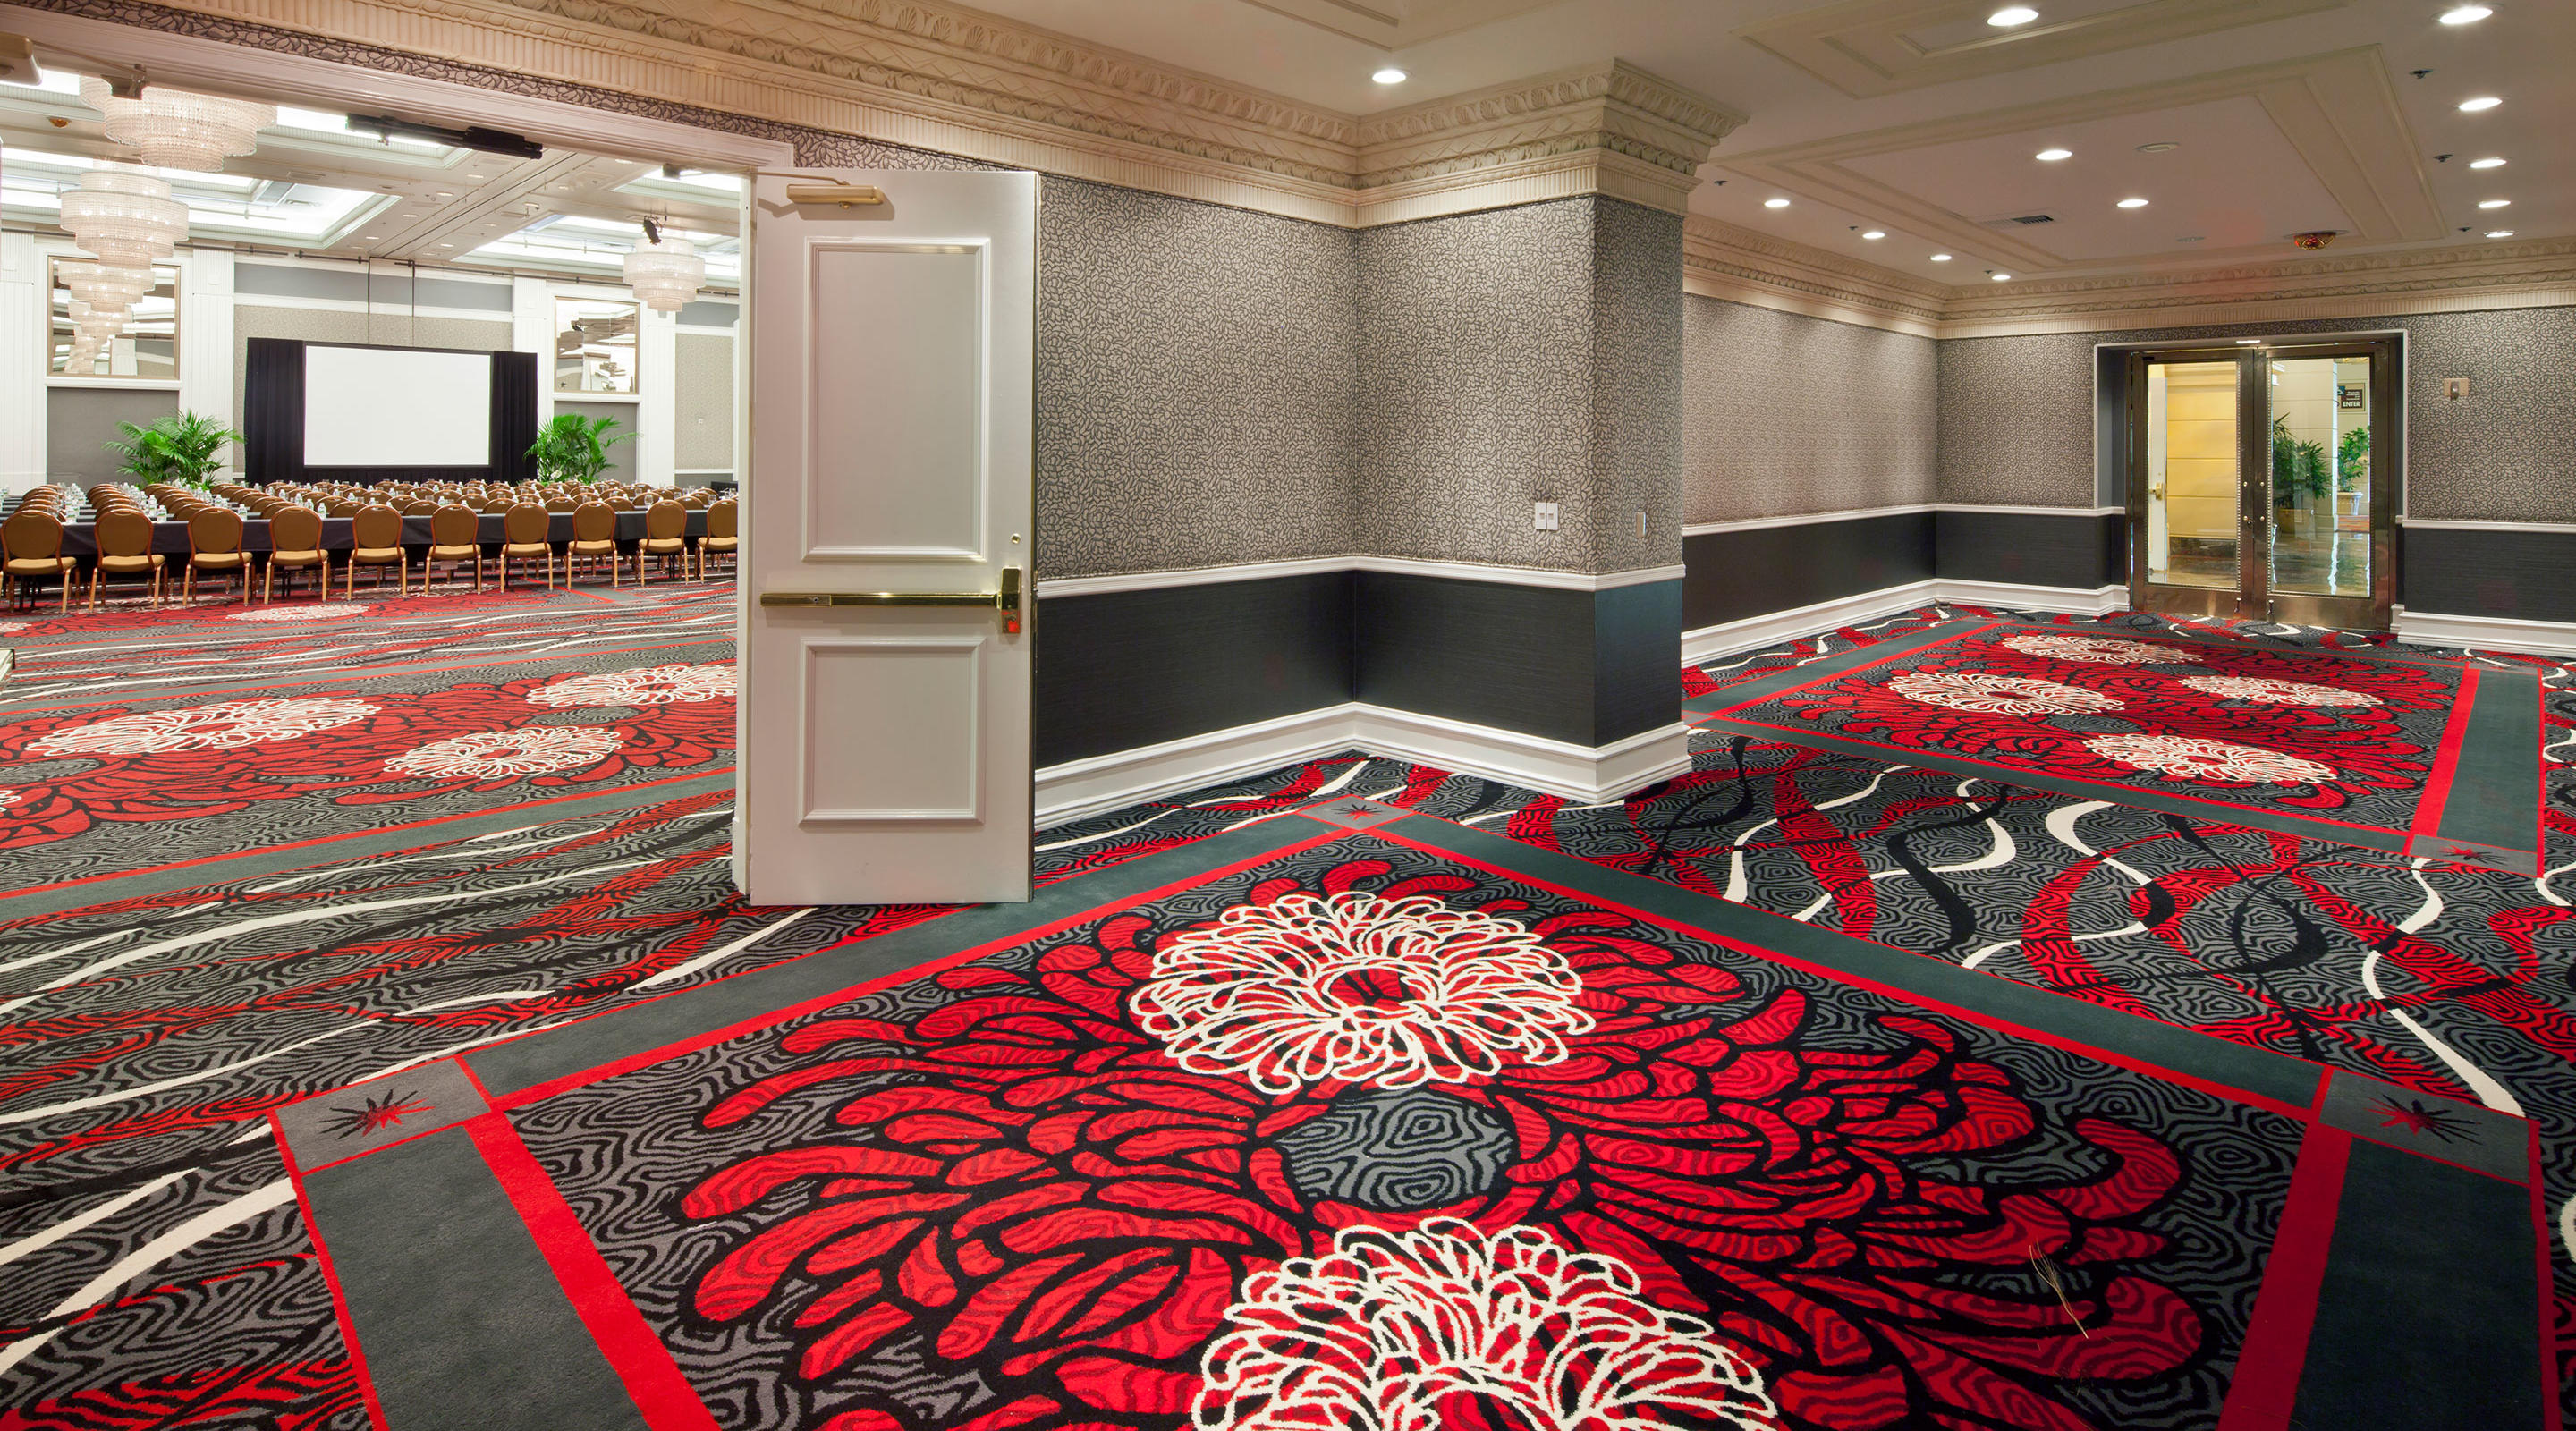 Entrance to the Studio Ballroom with classroom layout at MGM Grand